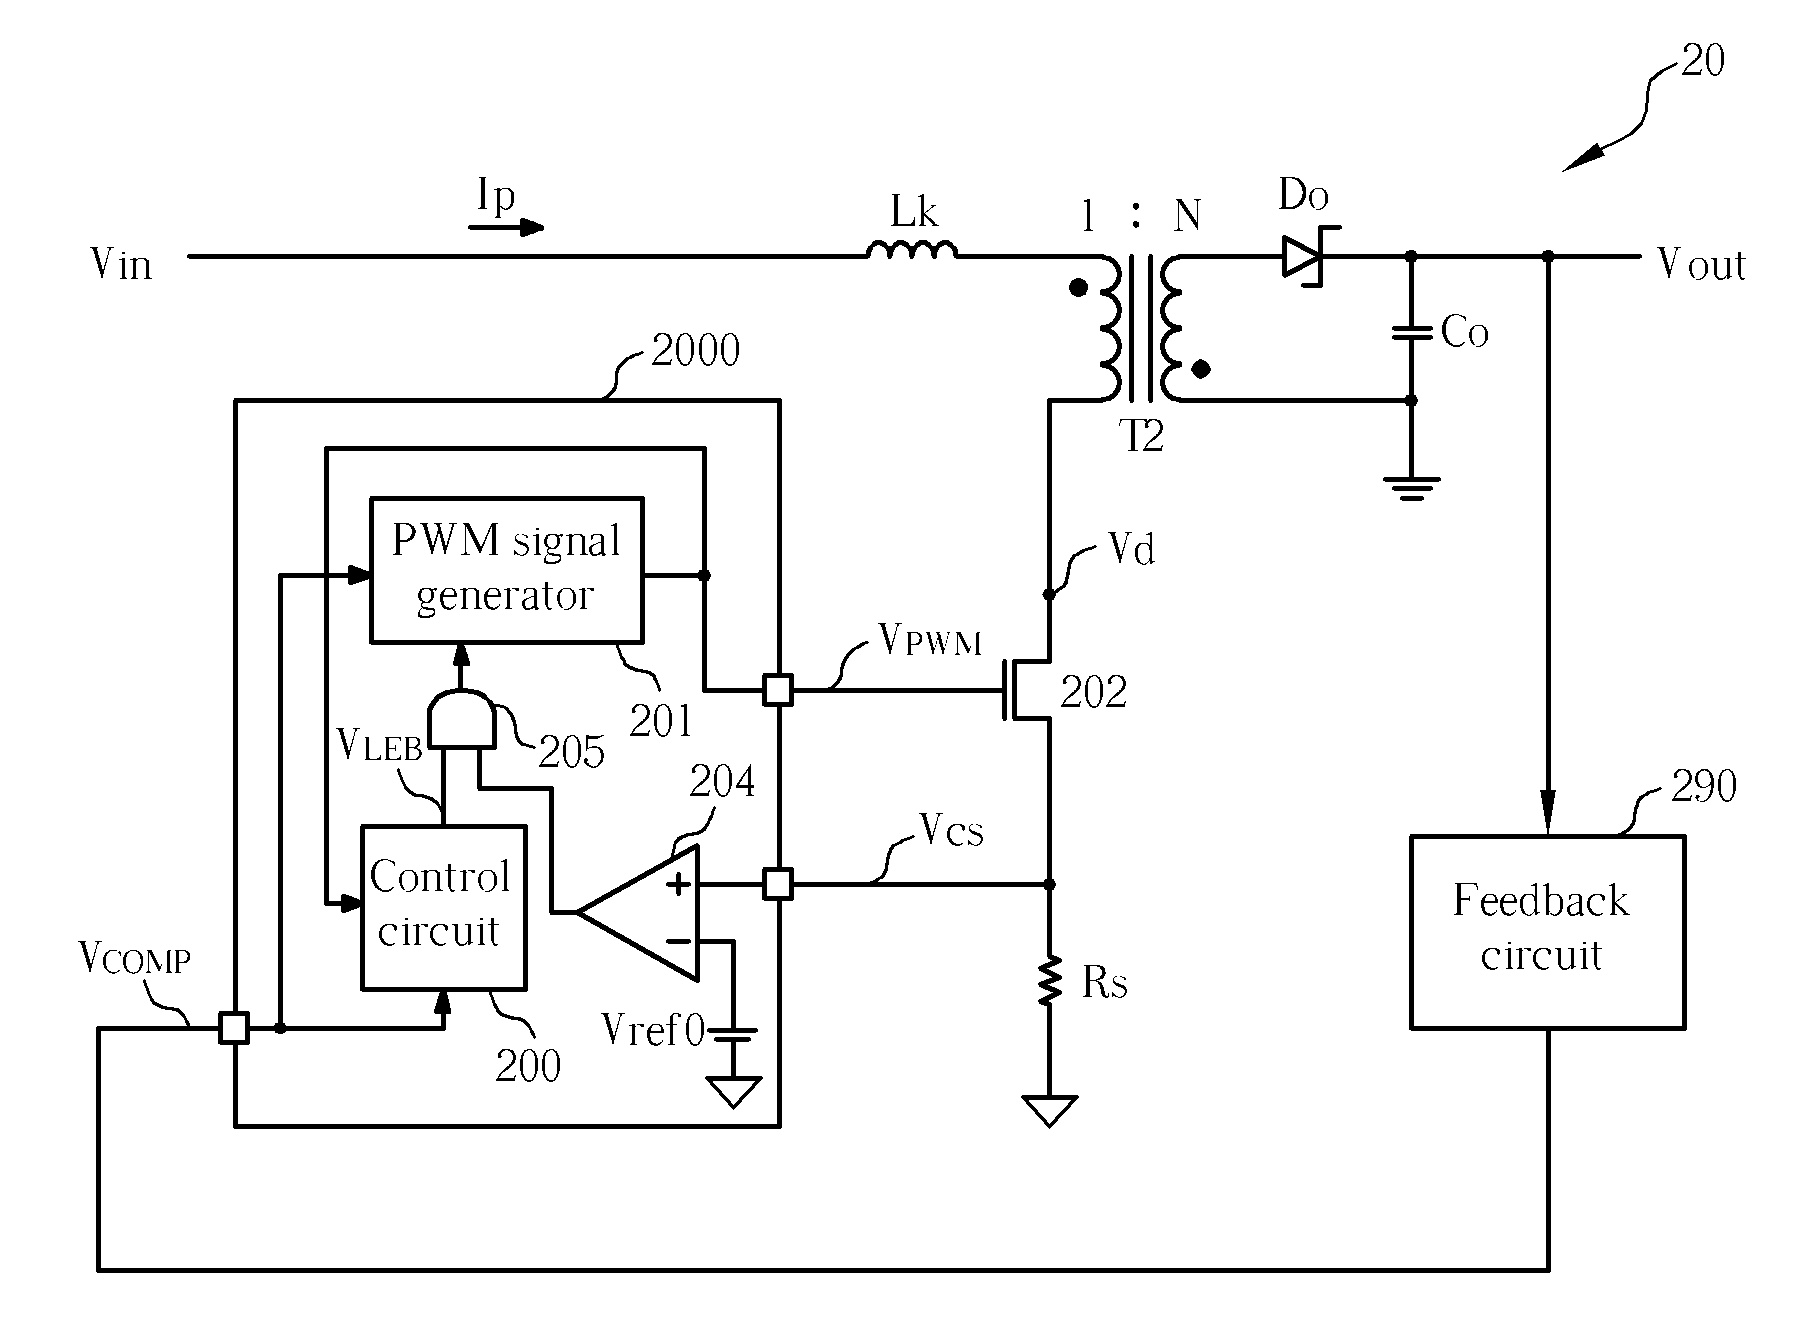 Fine Power Circuit And Control Picture Collection Motor Speed Using Lm3524 7619909 For Adjusting